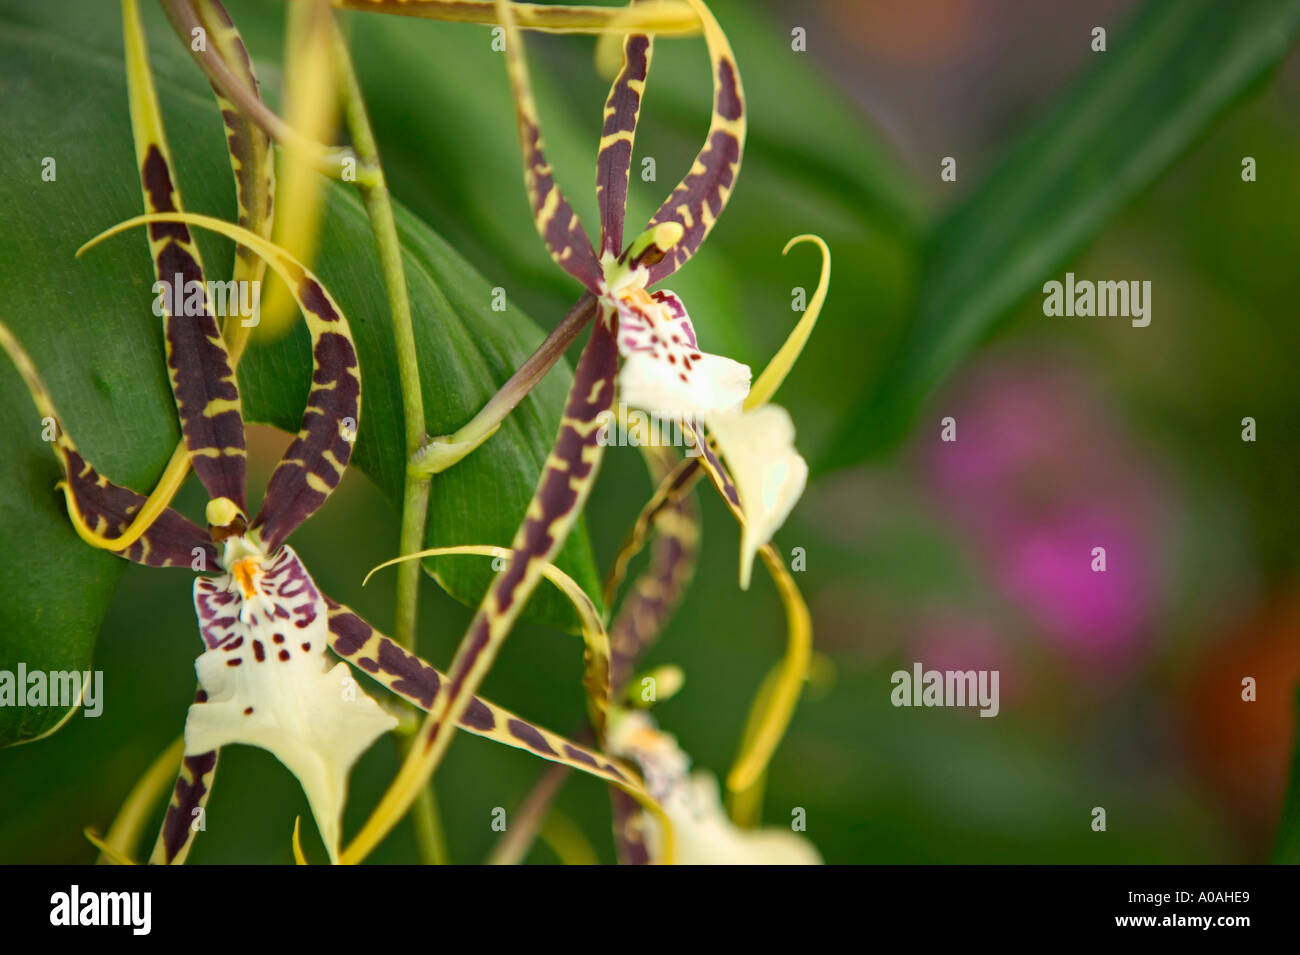 Orchid Obdrs Fangtastic Bob Henley H0F 4 - Stock Image